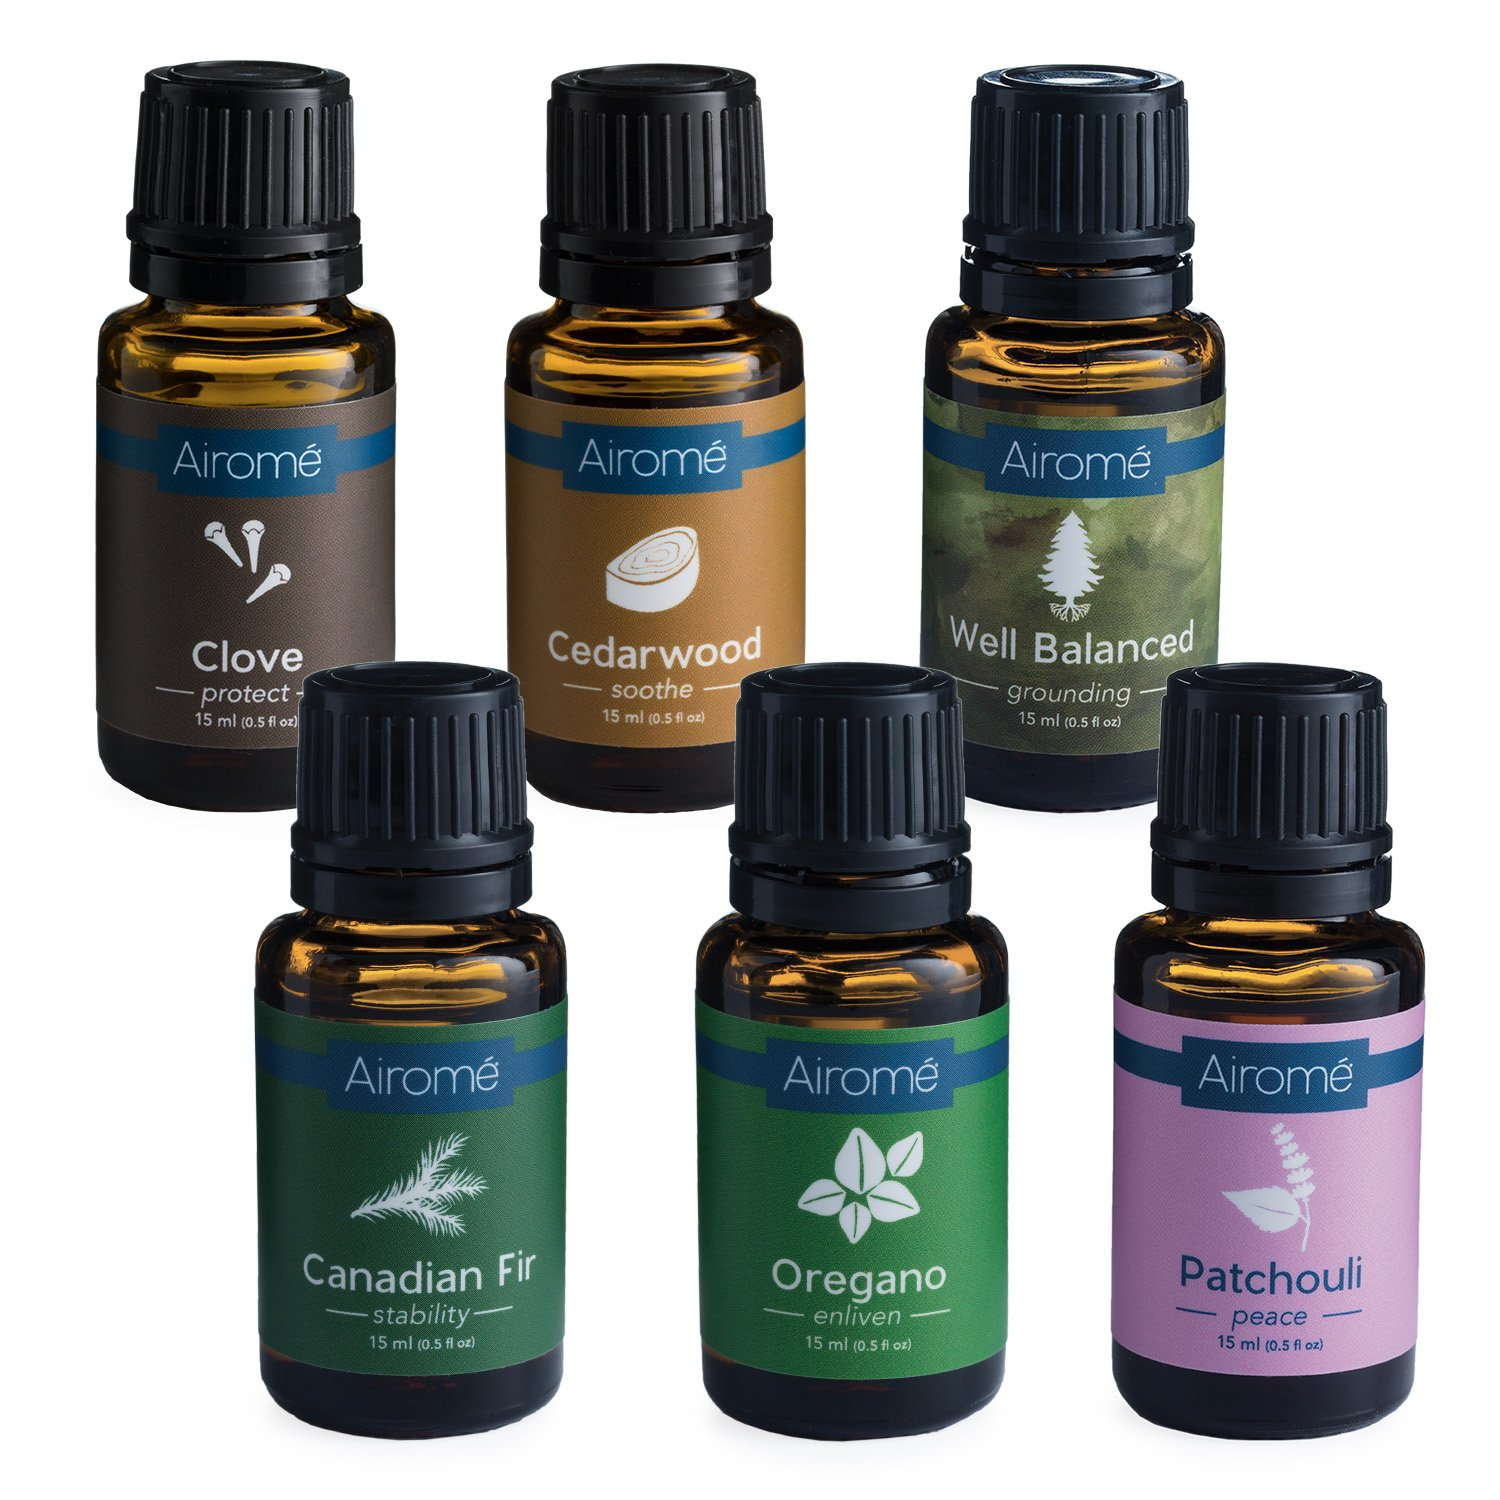 Airomé Essential Oil Grounding Warmth Bundle, Set of Six 15 ml Therapeutic Grade Essential Oils | Patchouli, Cedarwood, Well Balanced Blend, Canadian Fir, Oregano and Clove by Airomé